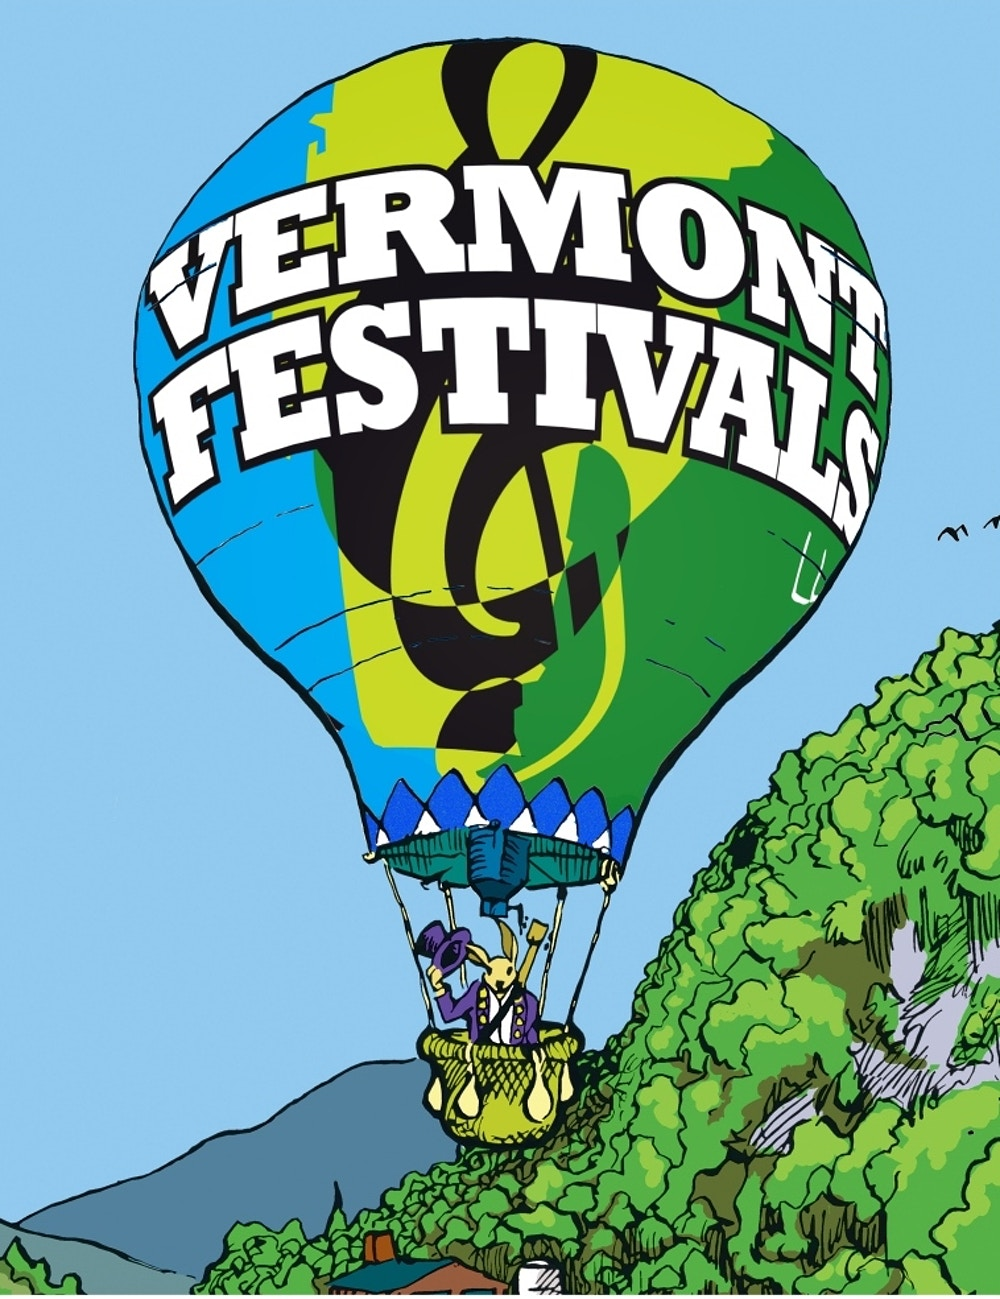 About VTF: Contact - Vermont Festivals/Roots on the River